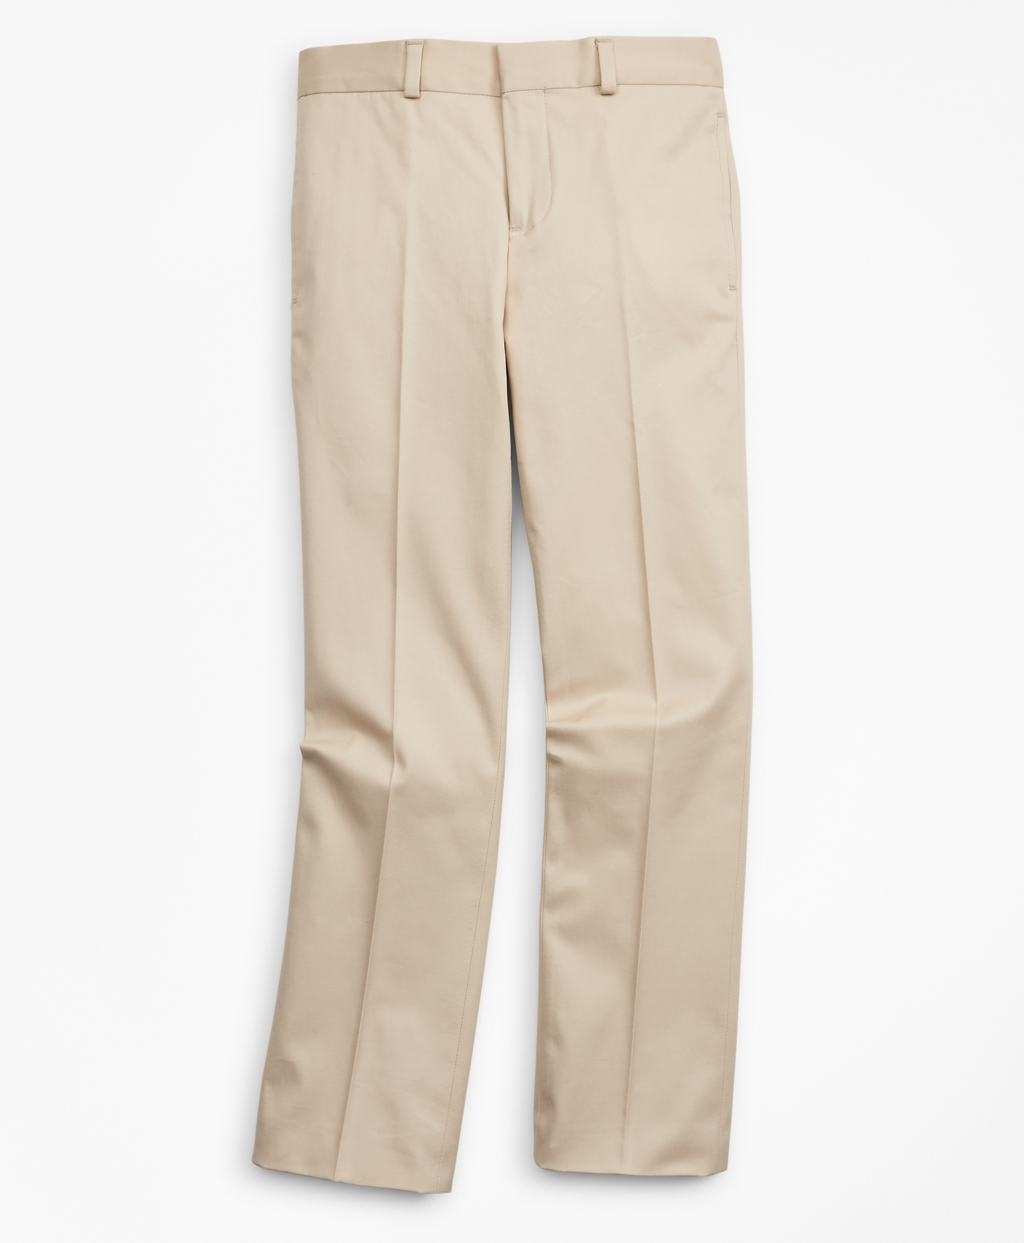 New Vintage Boys Clothing and Costumes Brooks Brothers Boys Boys Cotton Twill Suit Pants $69.50 AT vintagedancer.com